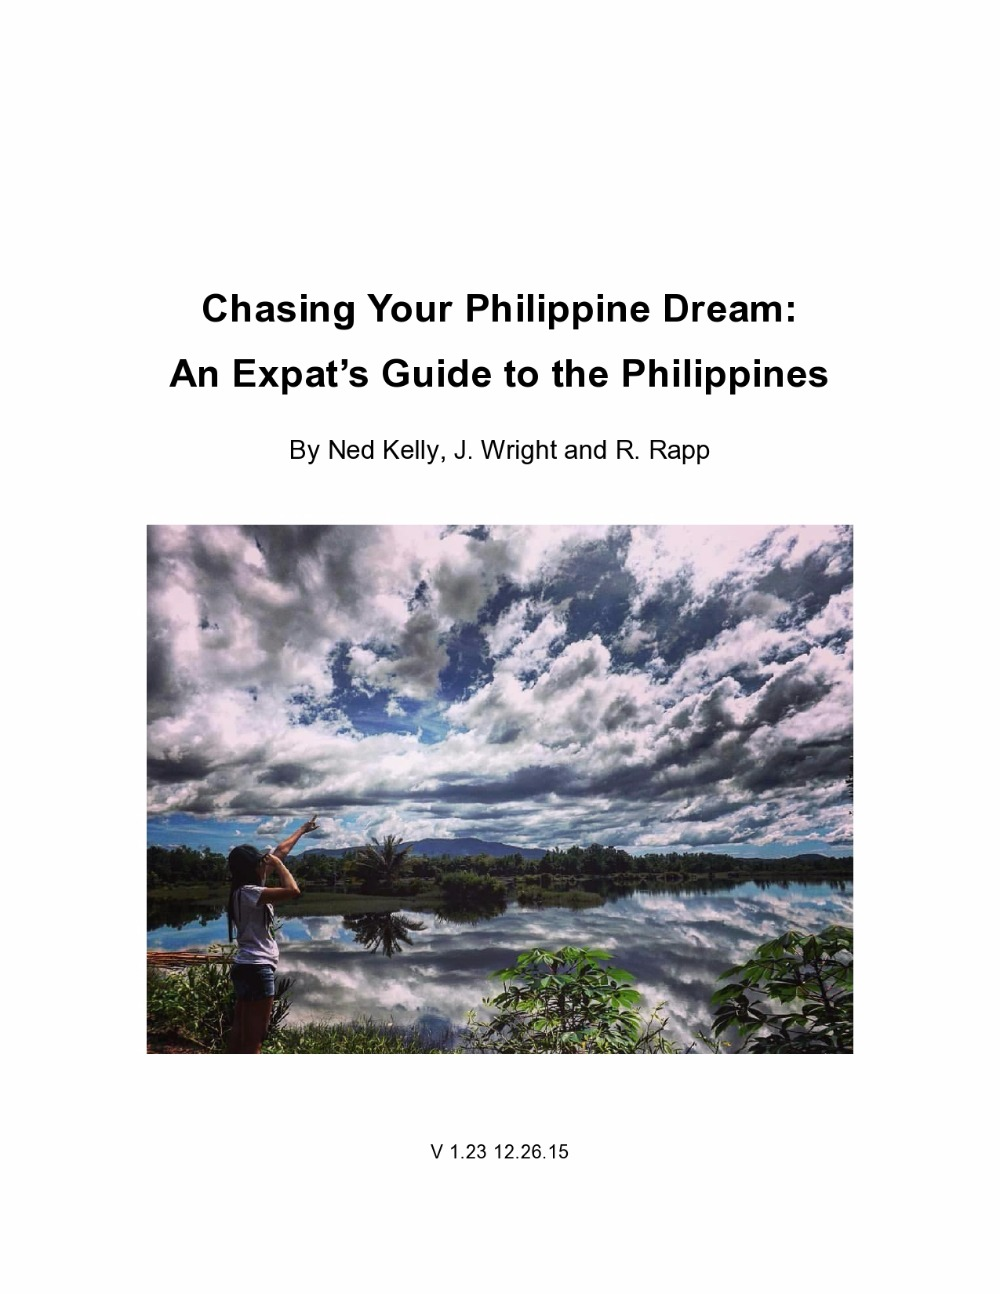 An Expat's Guide to the Philippines 2019